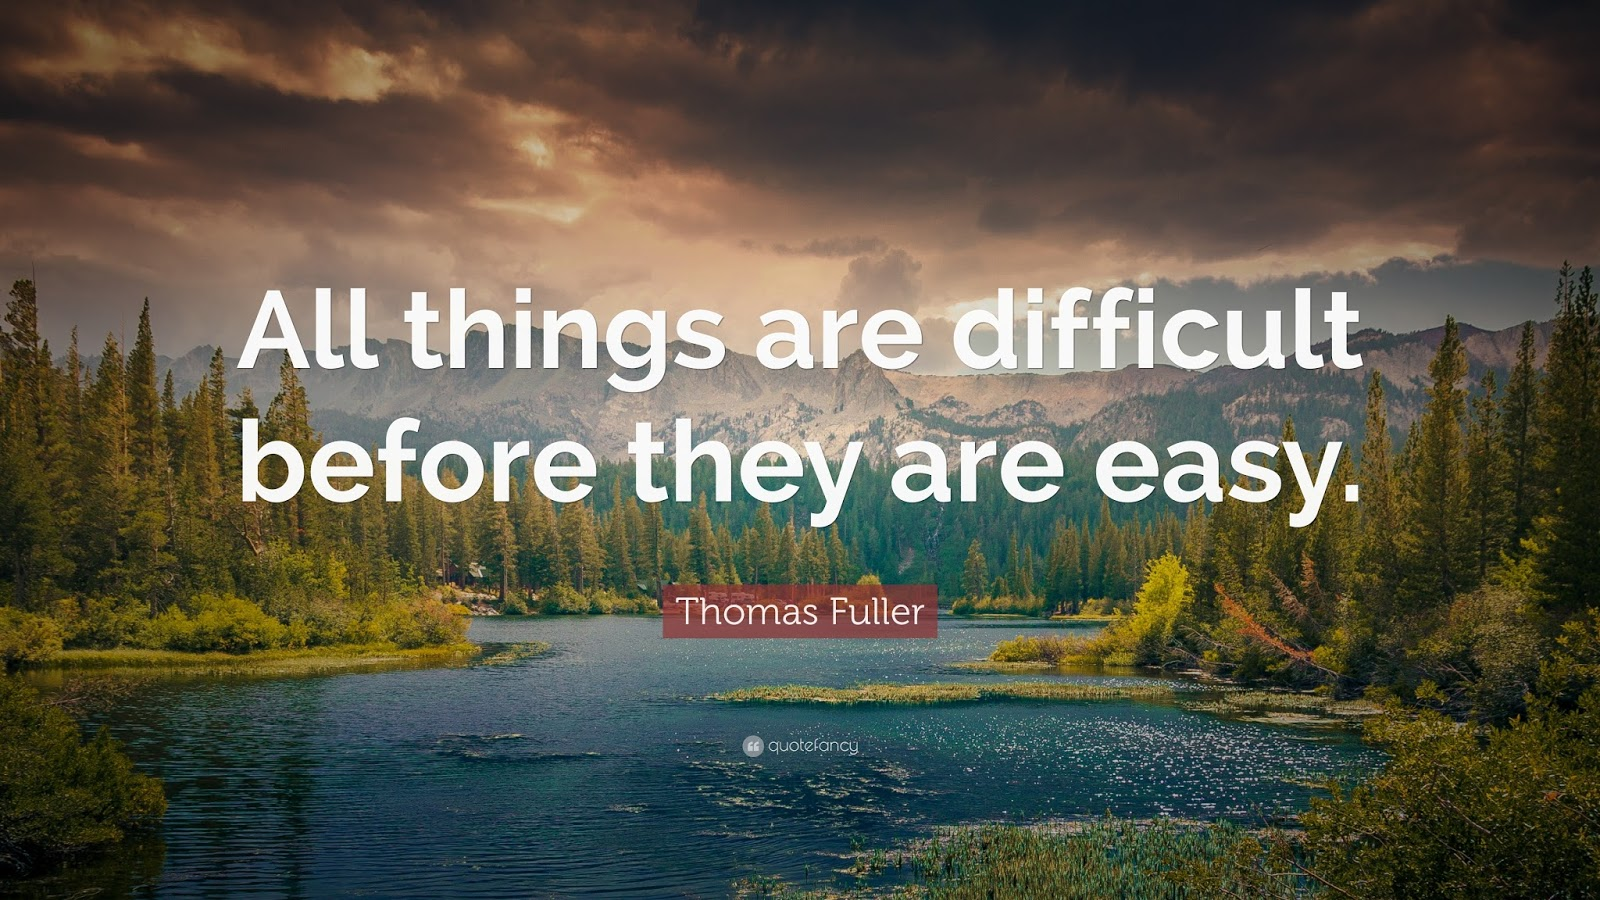 All things are difficult before they are easy - Thomas Fuller